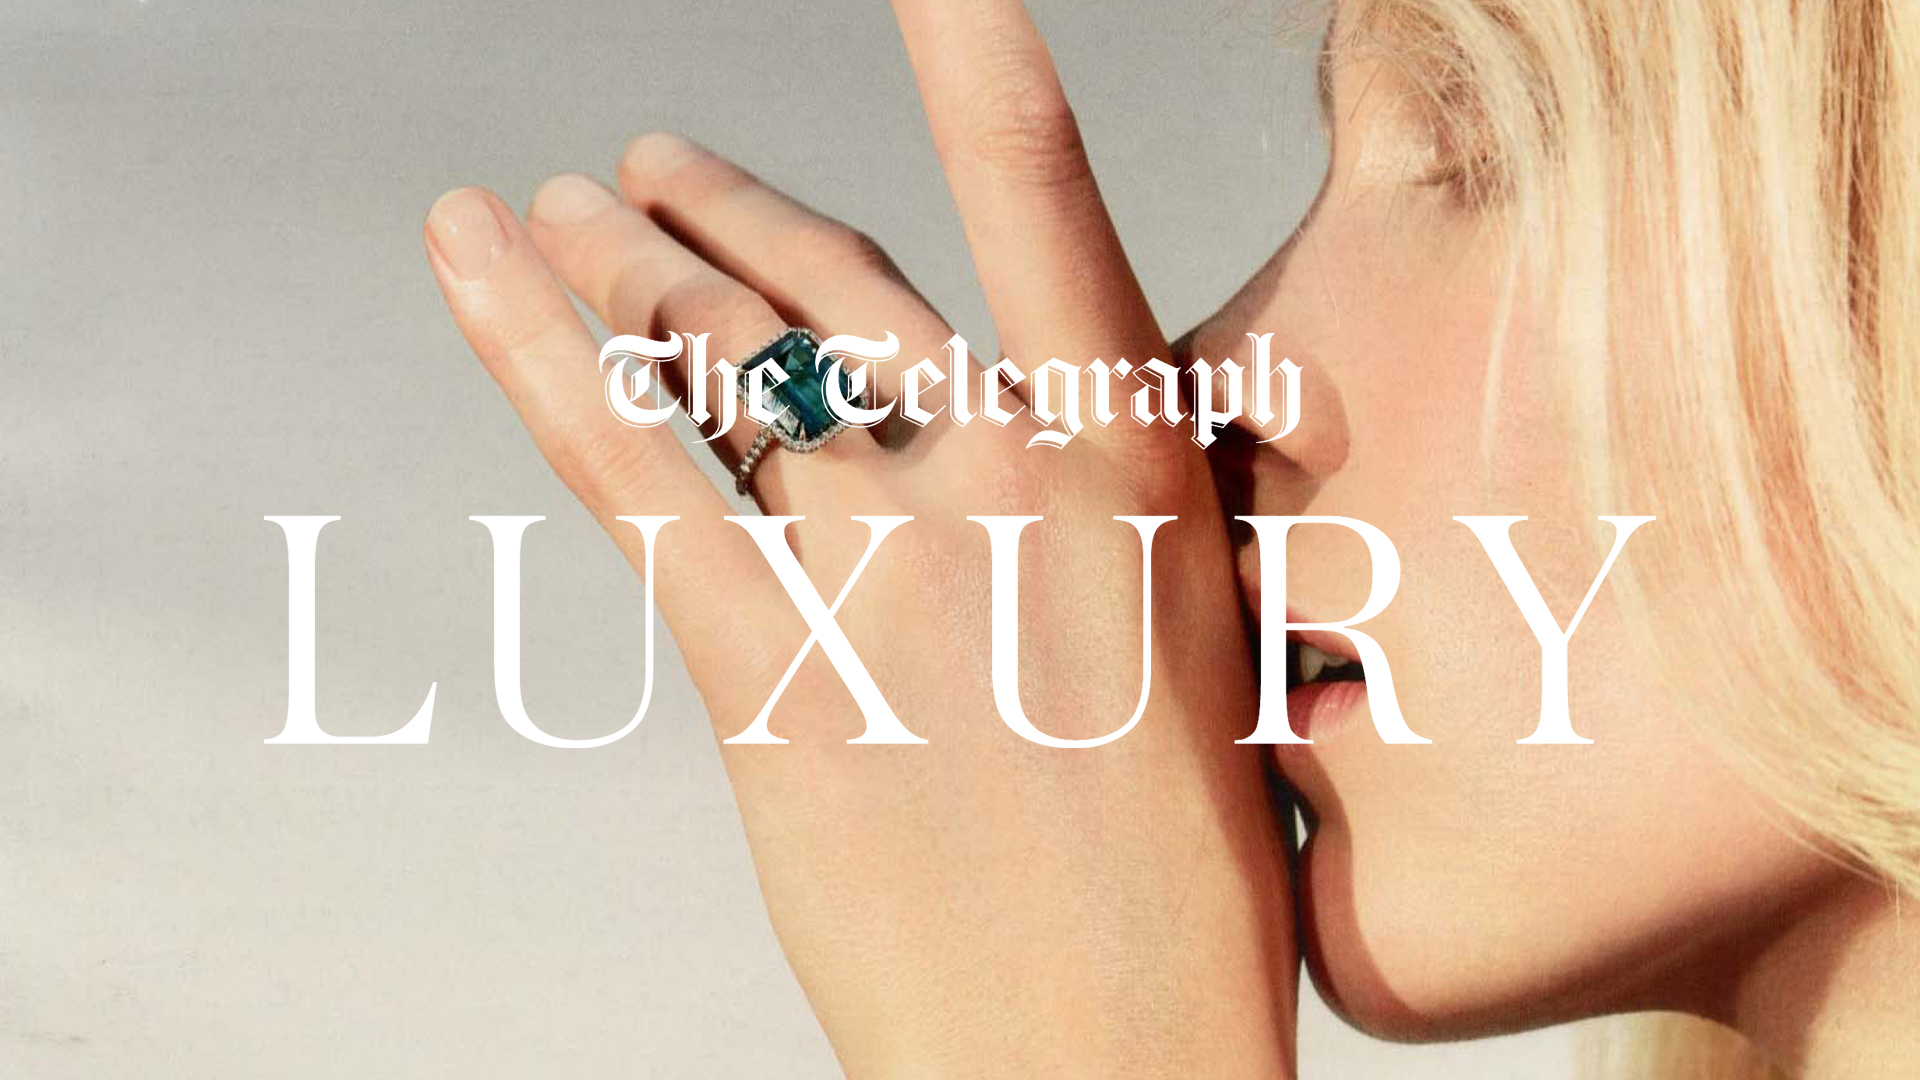 15 - TelegraphLuxury_UK_dec2016.jpg